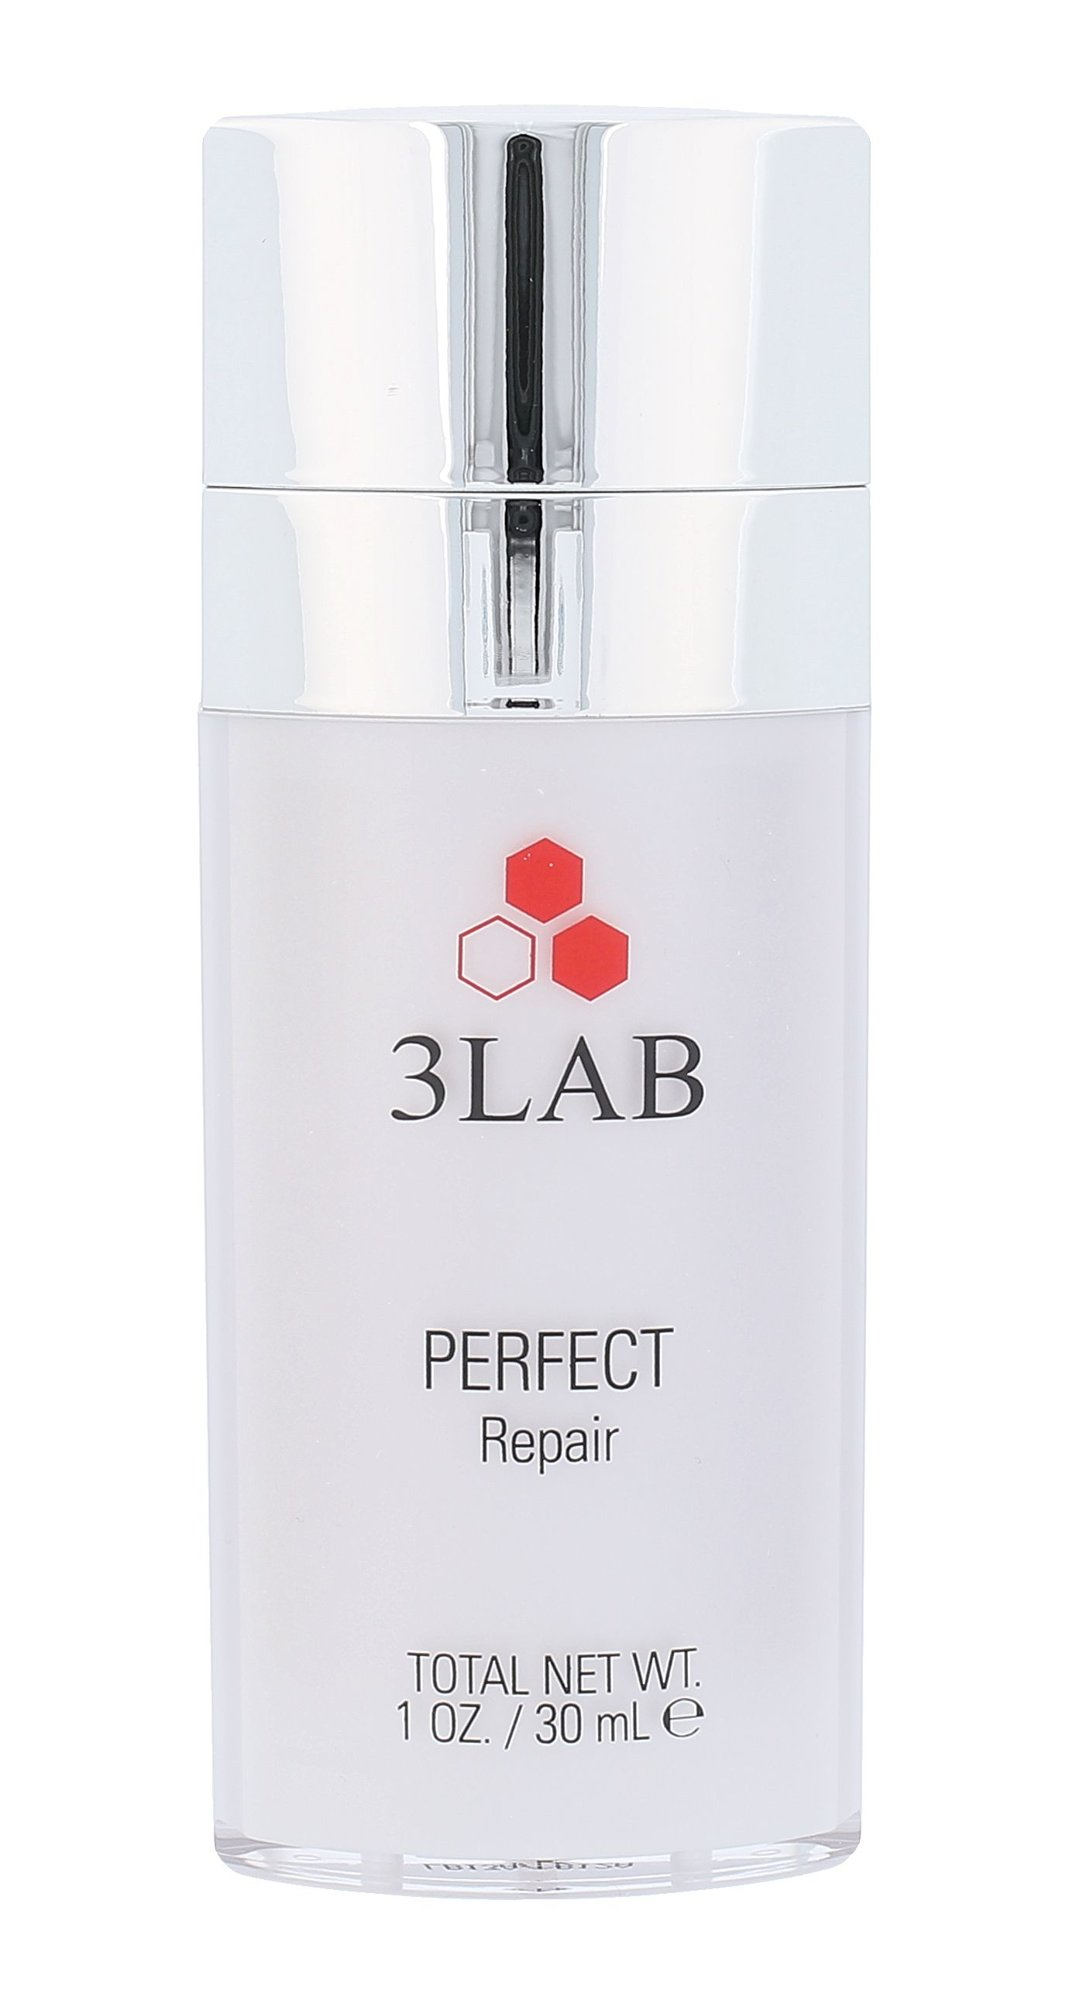 3LAB Perfect Repair